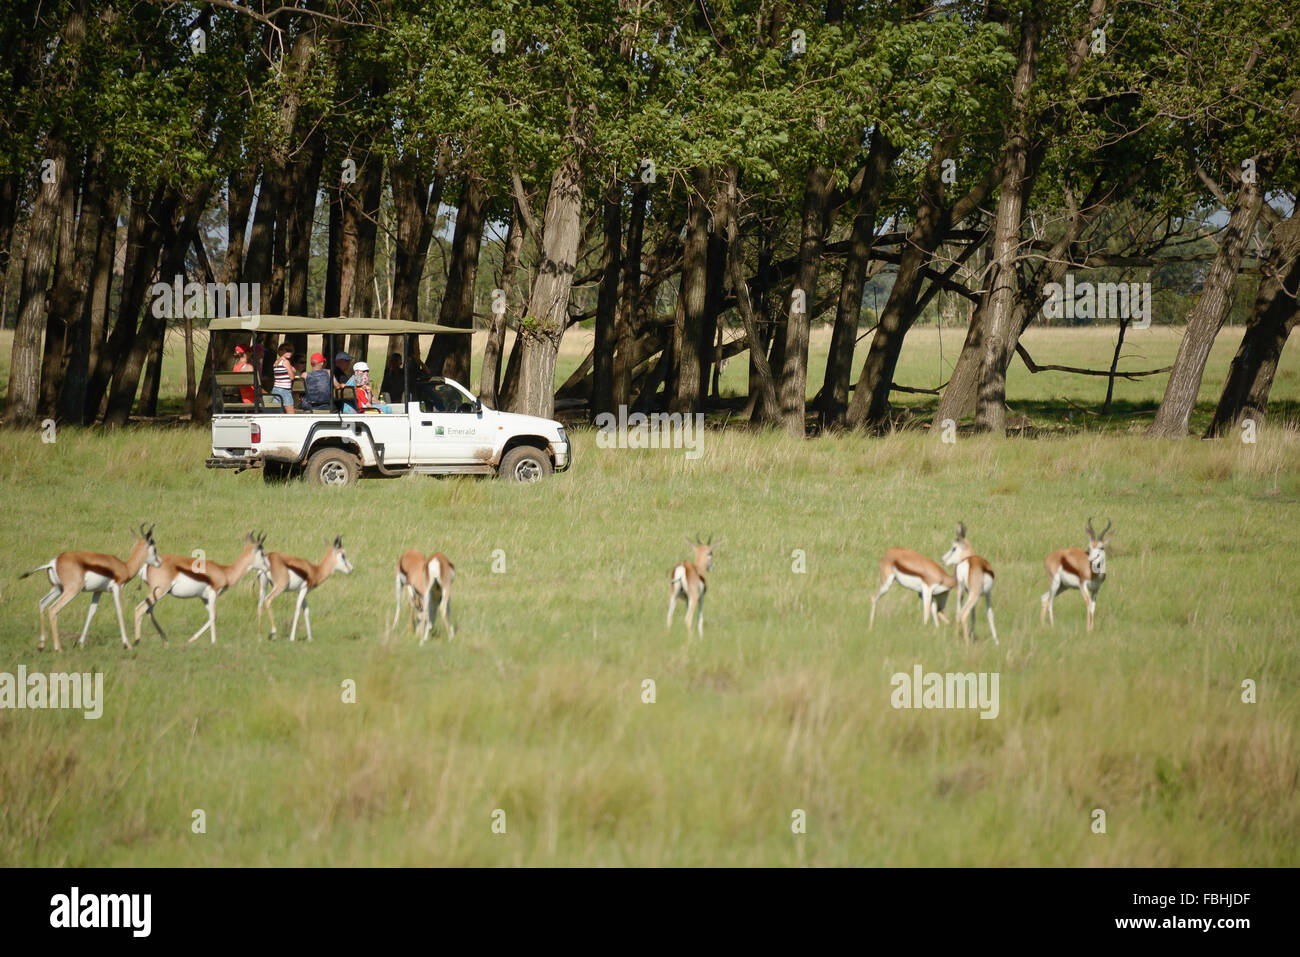 Animal World Game Park, Emerald Resort & Casino, Vanderbijlpark, Emfuleni Municipality, Gauteng,  Republic of - Stock Image